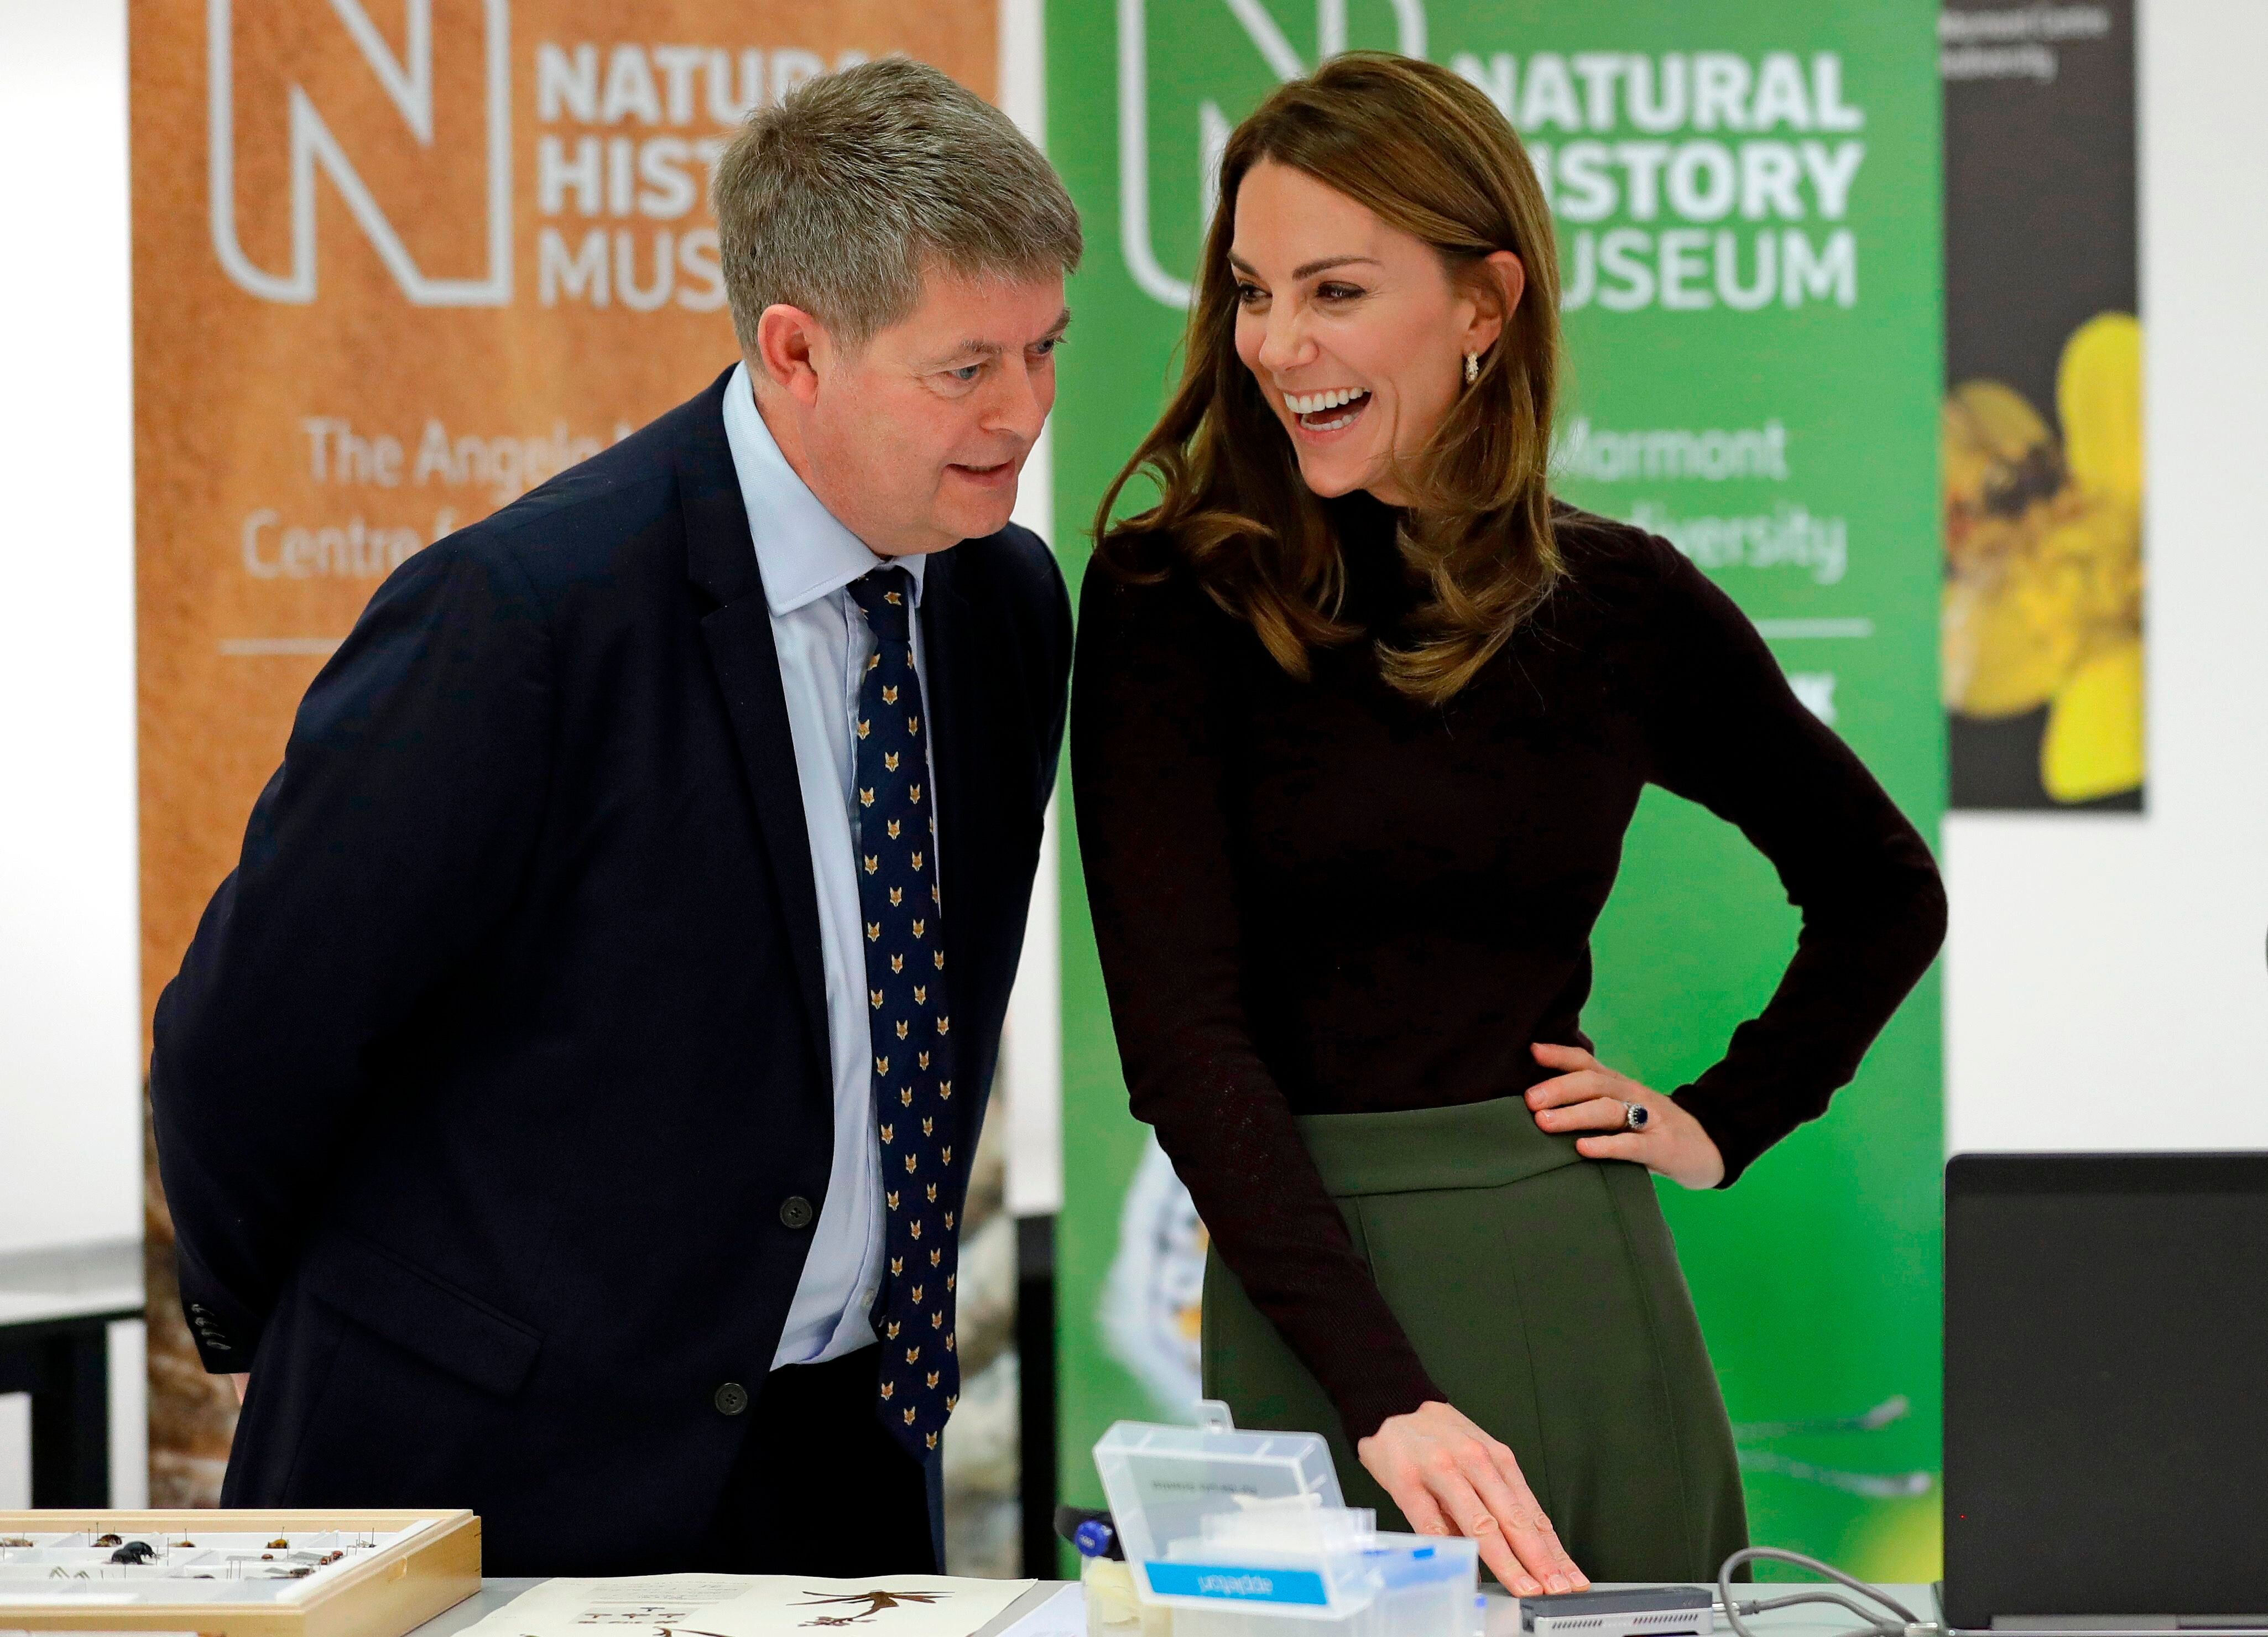 The duchess speaks with Michael Dixon, director of the Natural History Museum, during her visit.